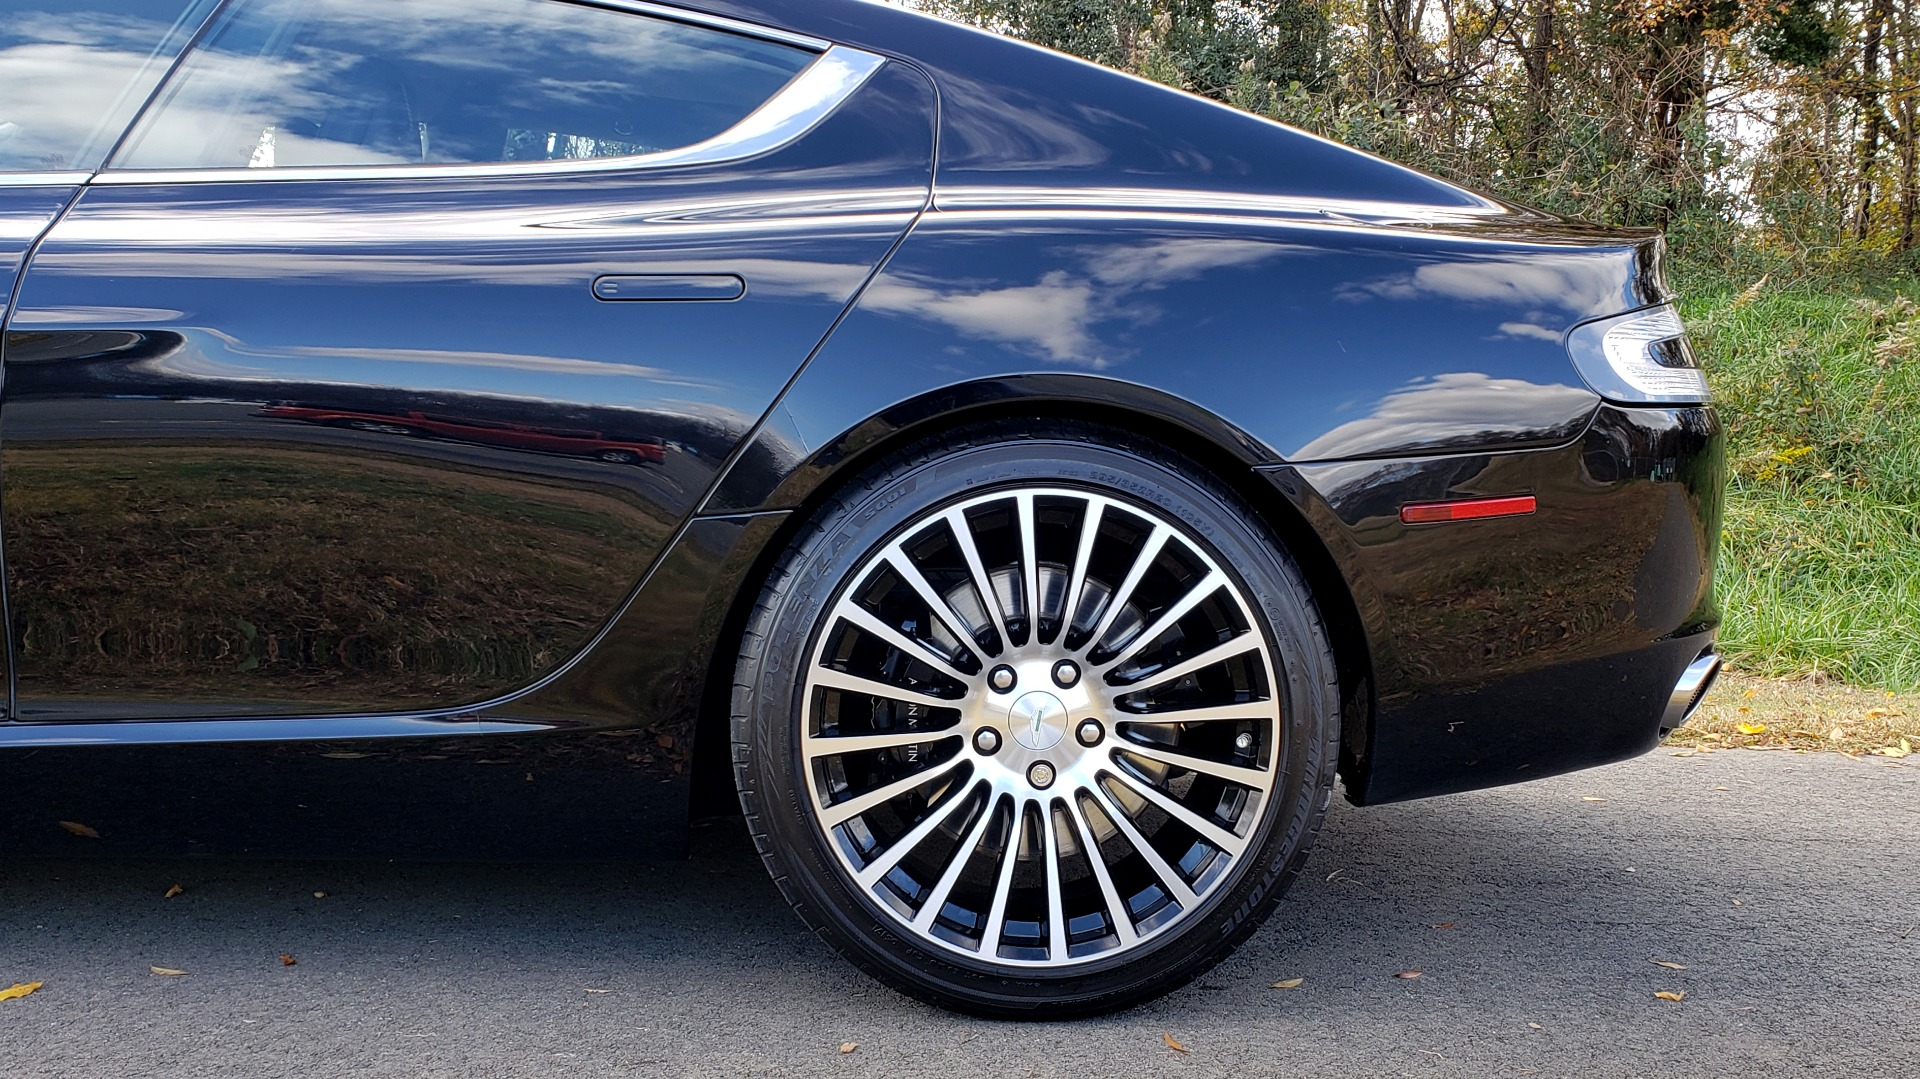 Used 2012 Aston Martin RAPIDE LUXURY 6.0L V12 / NAV / B&O SND / ENTERTAINMENT / REARVIEW for sale Sold at Formula Imports in Charlotte NC 28227 84